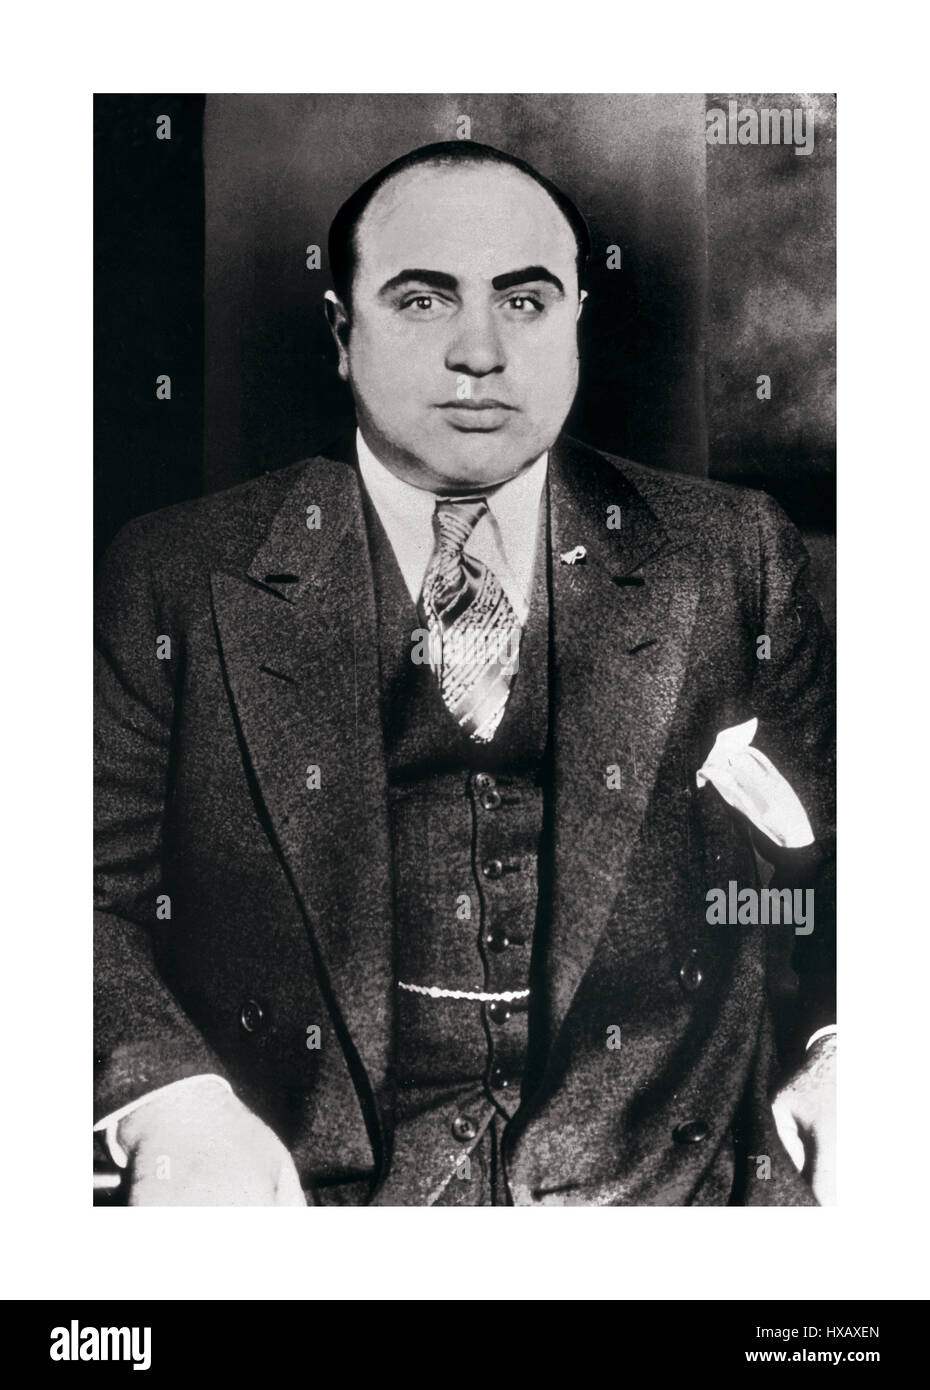 Al Capone the most notorious American Gangster of his era who dominated organised crime in Chicago USA from 1925 Stock Photo